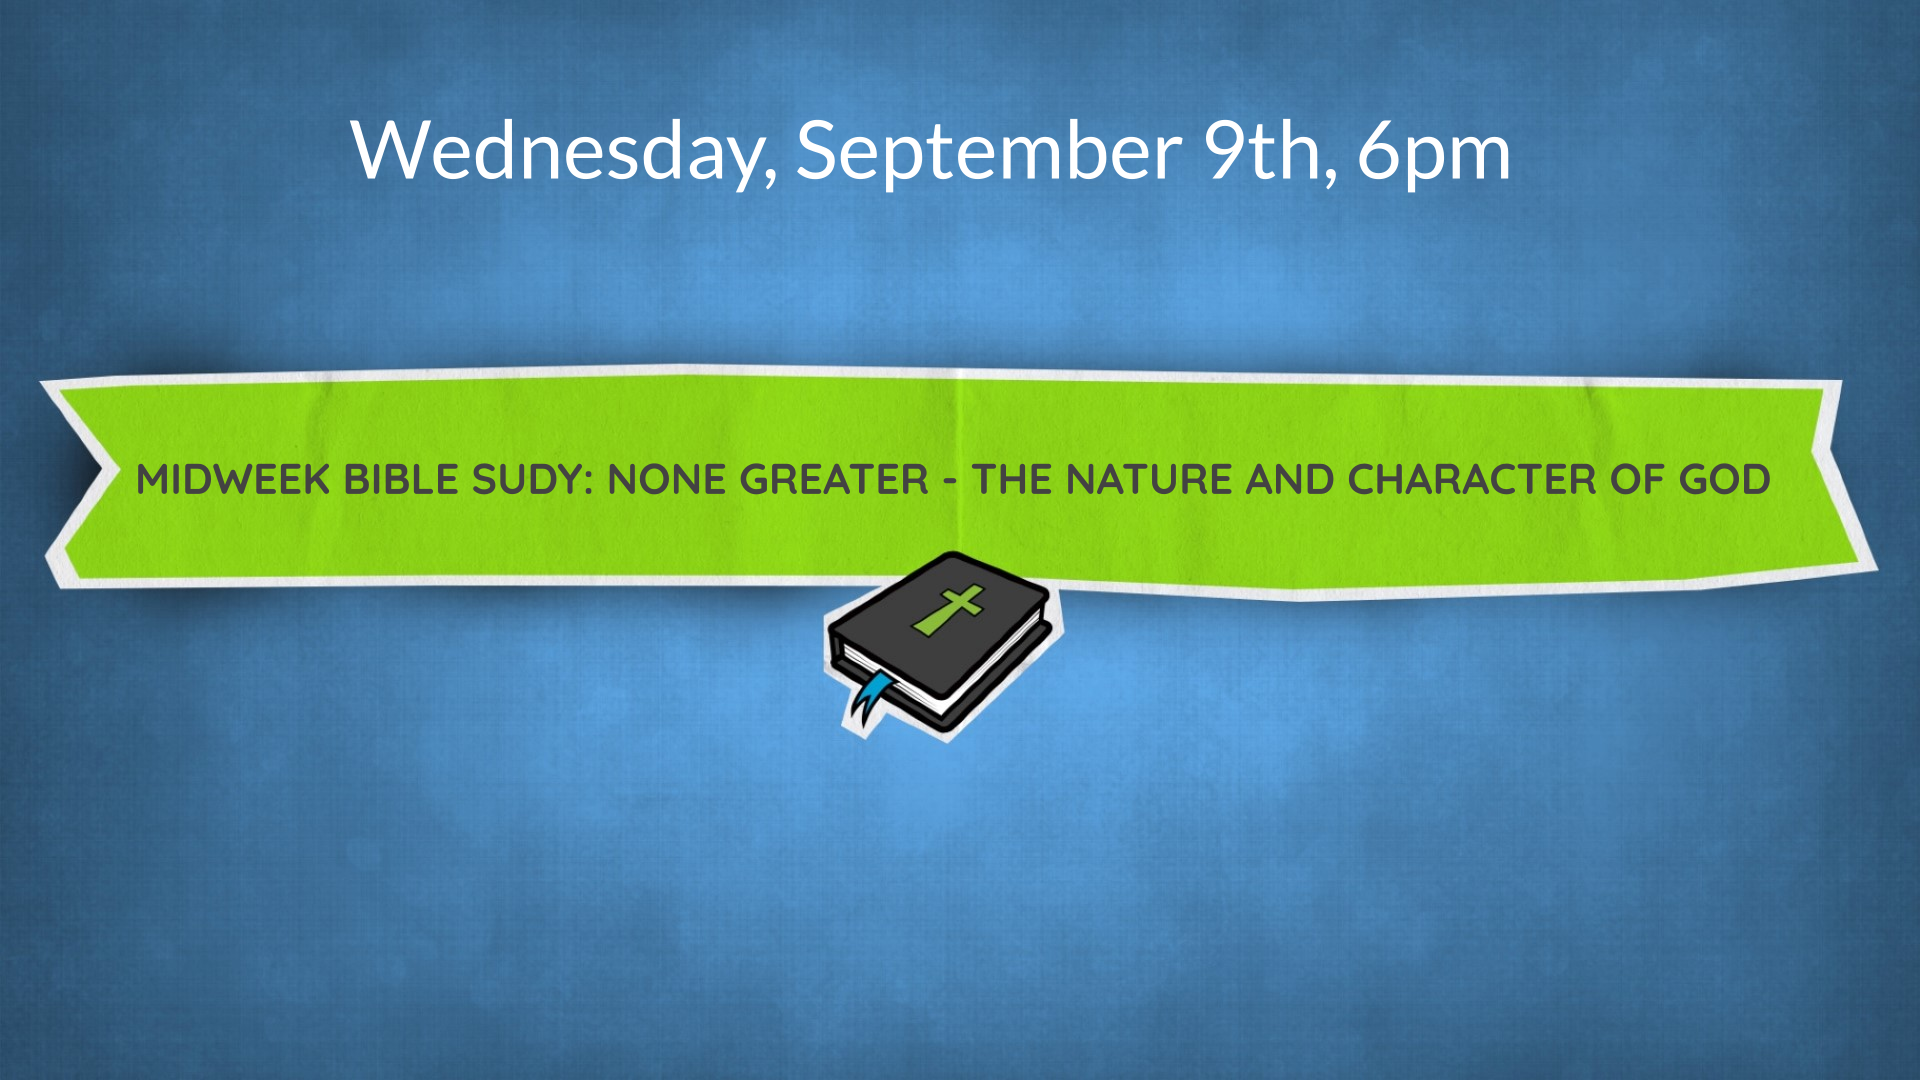 MidWeek Bible Sudy: None Greater - The Nature and Character of God